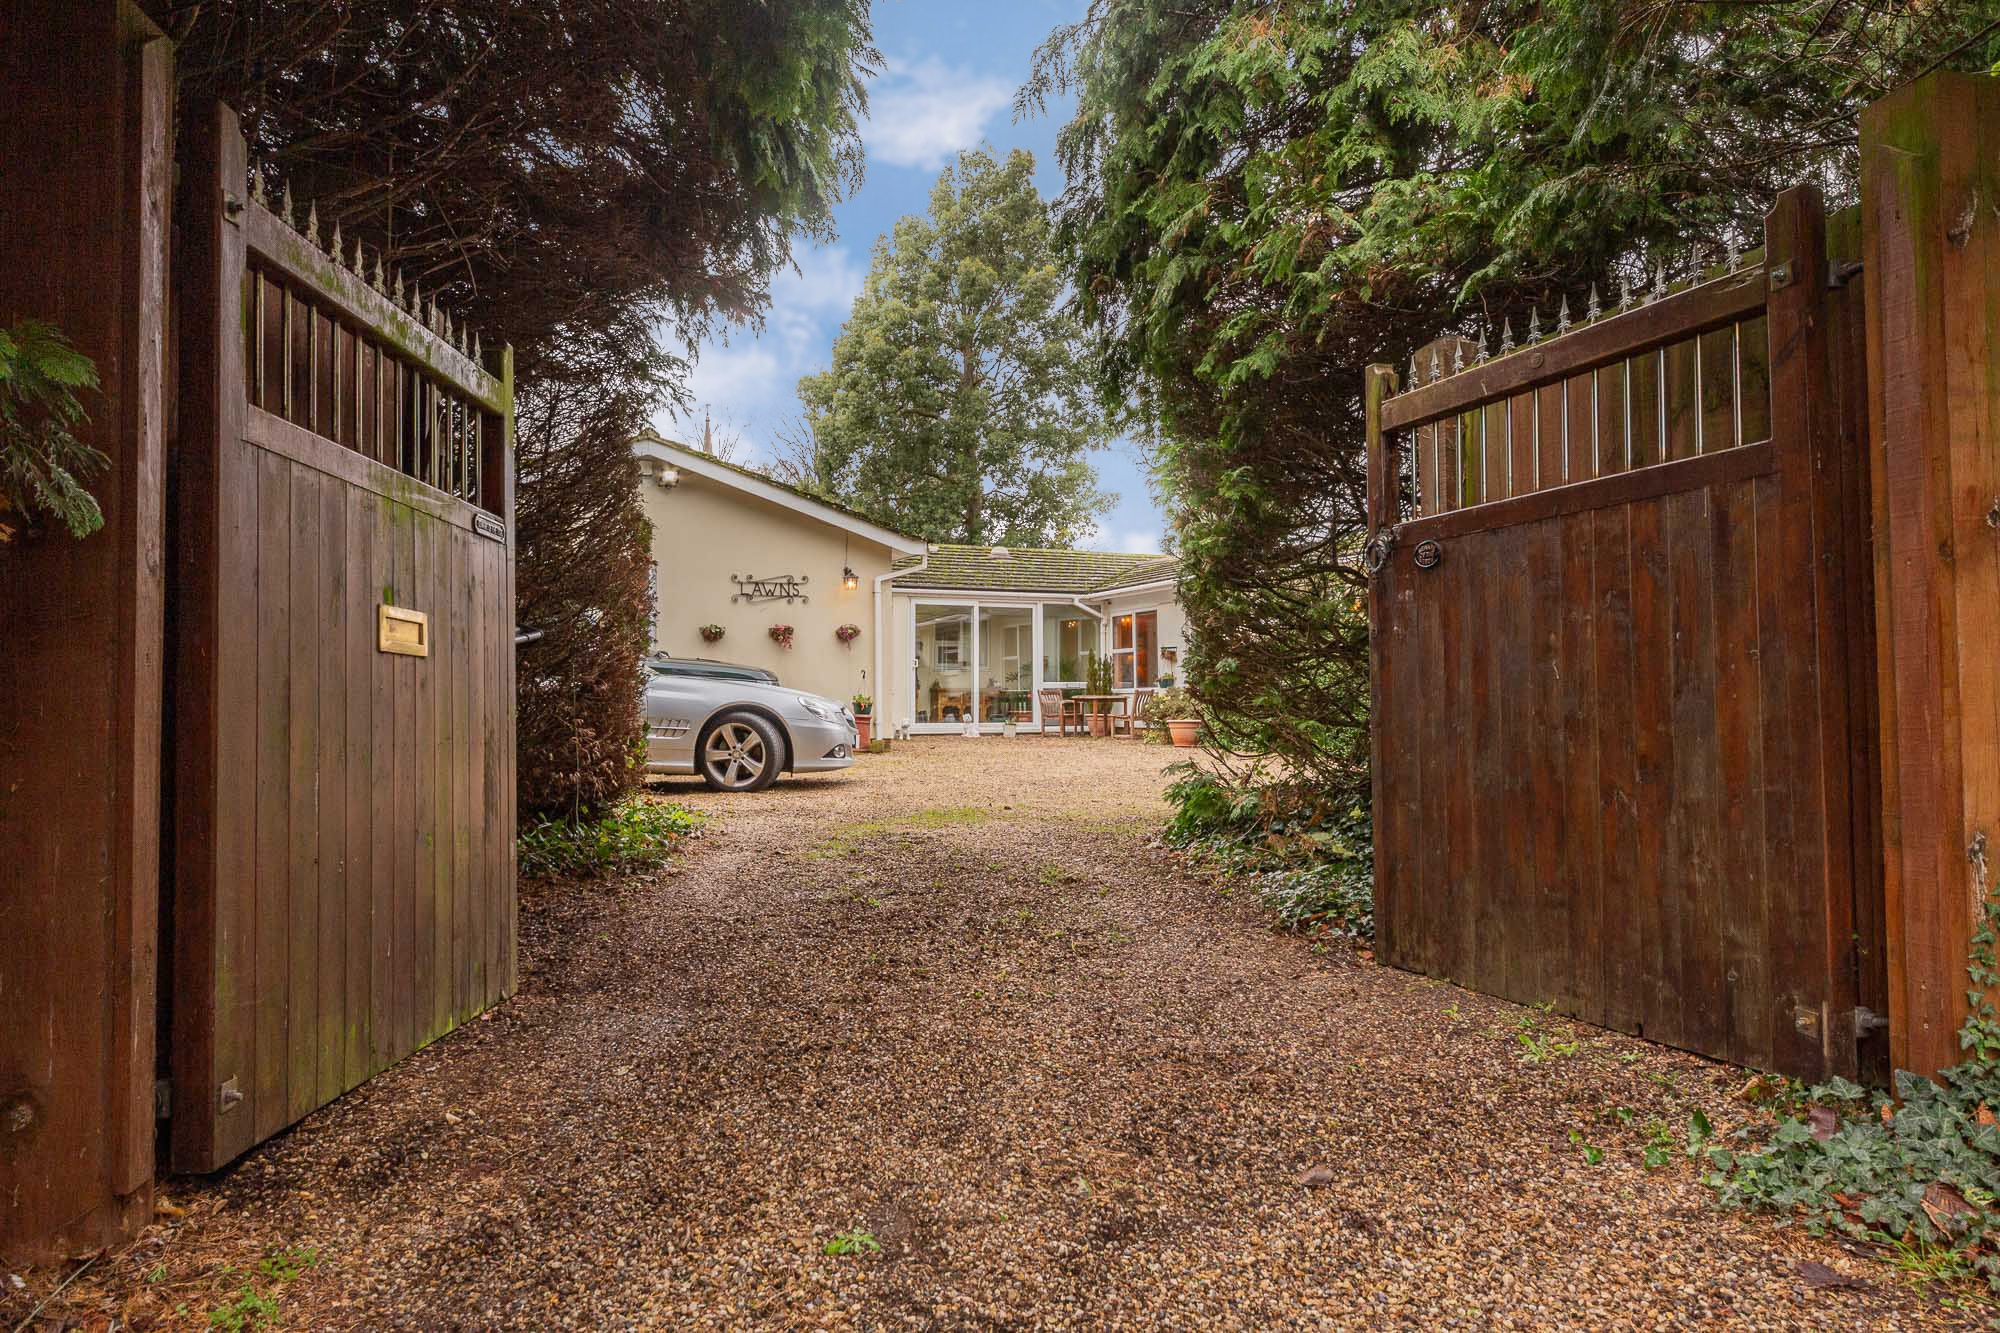 Joscelyne Chase Property Consultants have the pleasure of presenting property for Sale and Let in Braintree, the surrounding area and across North Essex & South Suffolk